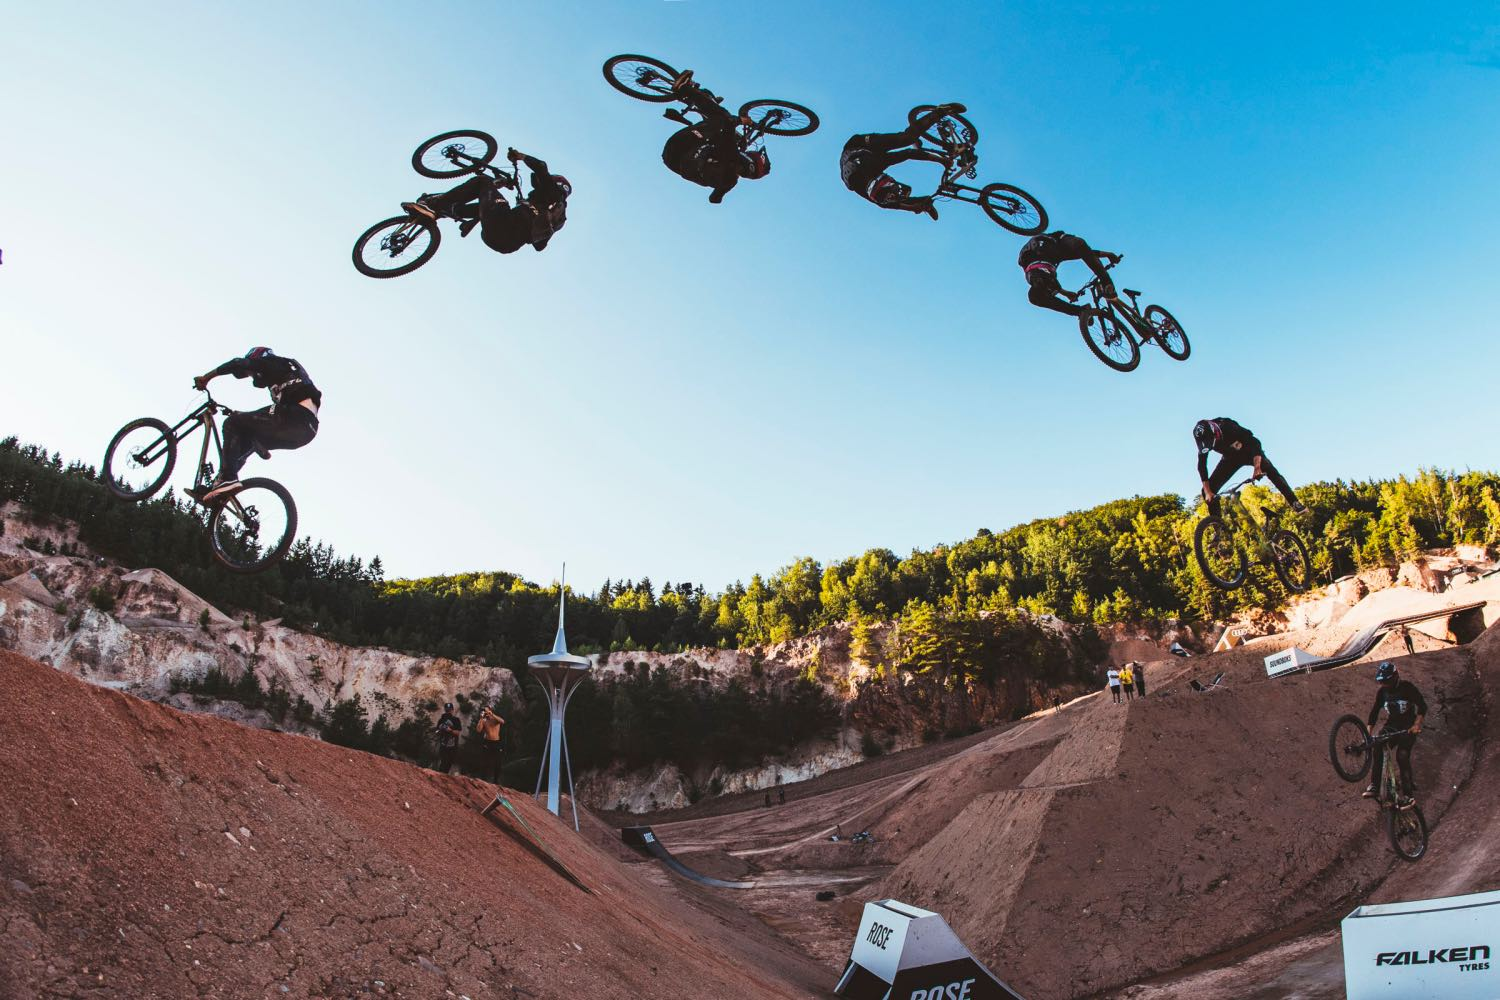 Elias Ruso riding at the 2021 Audi Nines Freeride and Slopestyle MTB event